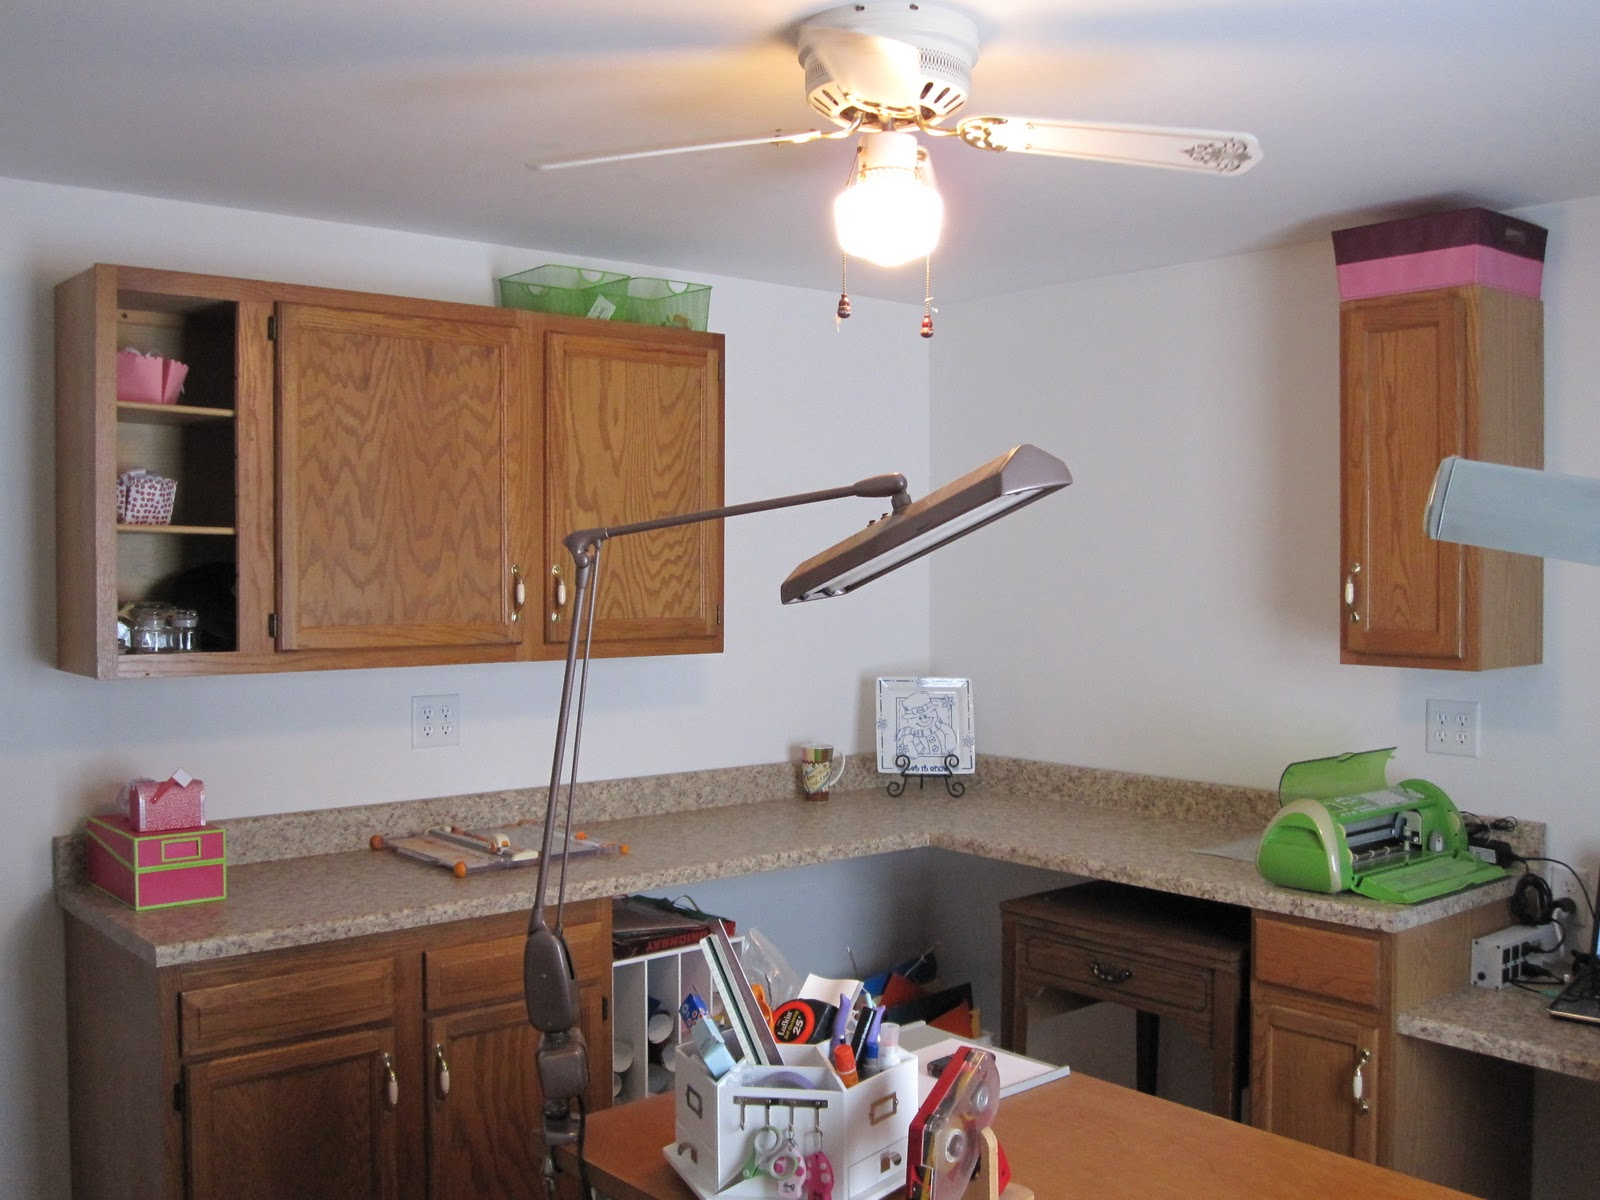 We will put open shelving between the upper cabinets